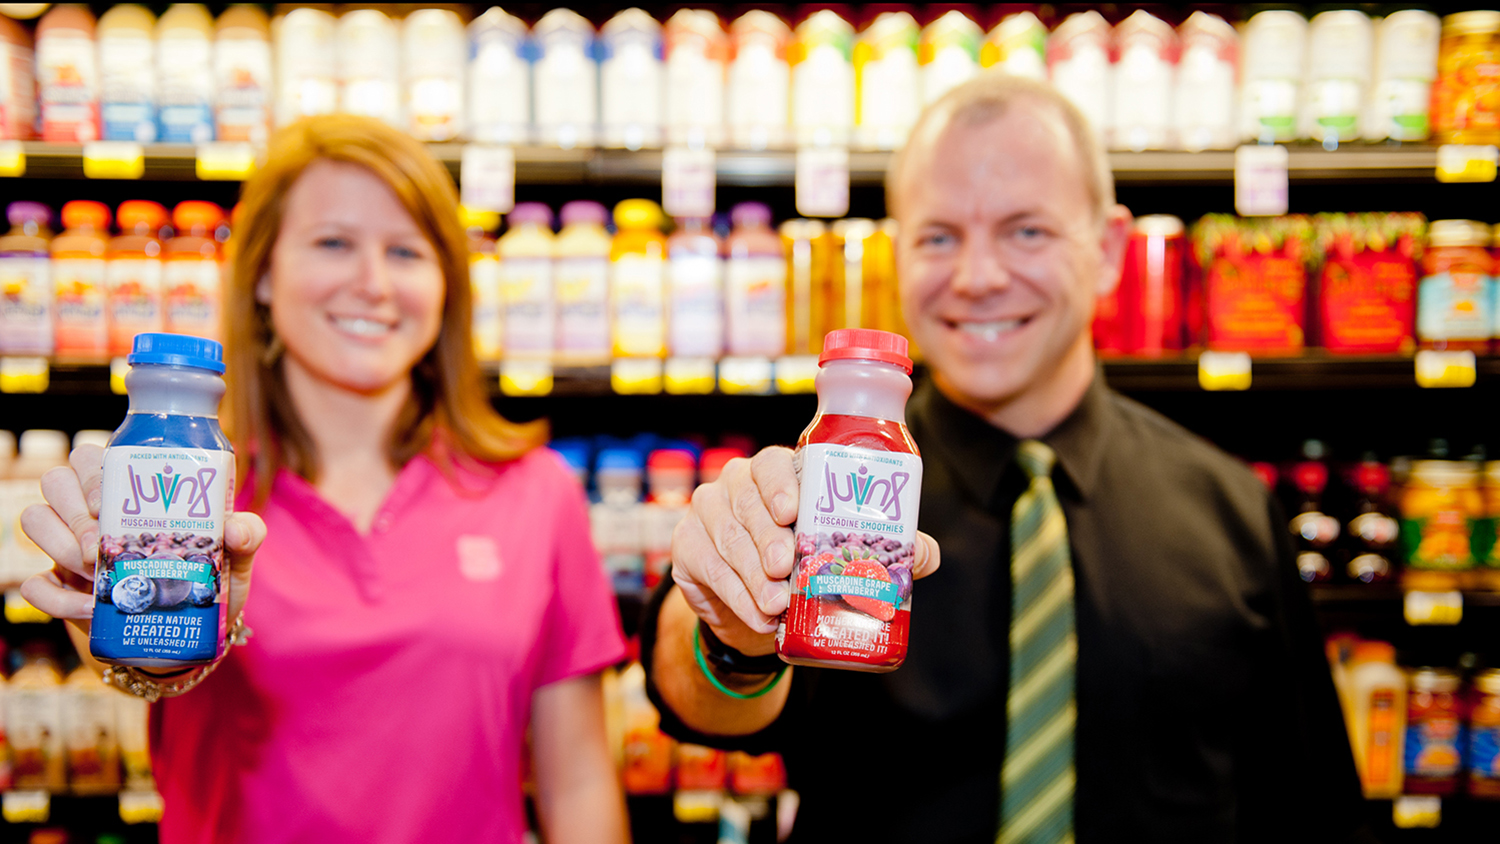 Student and professor holding a beverage product they developed in a grocery store.